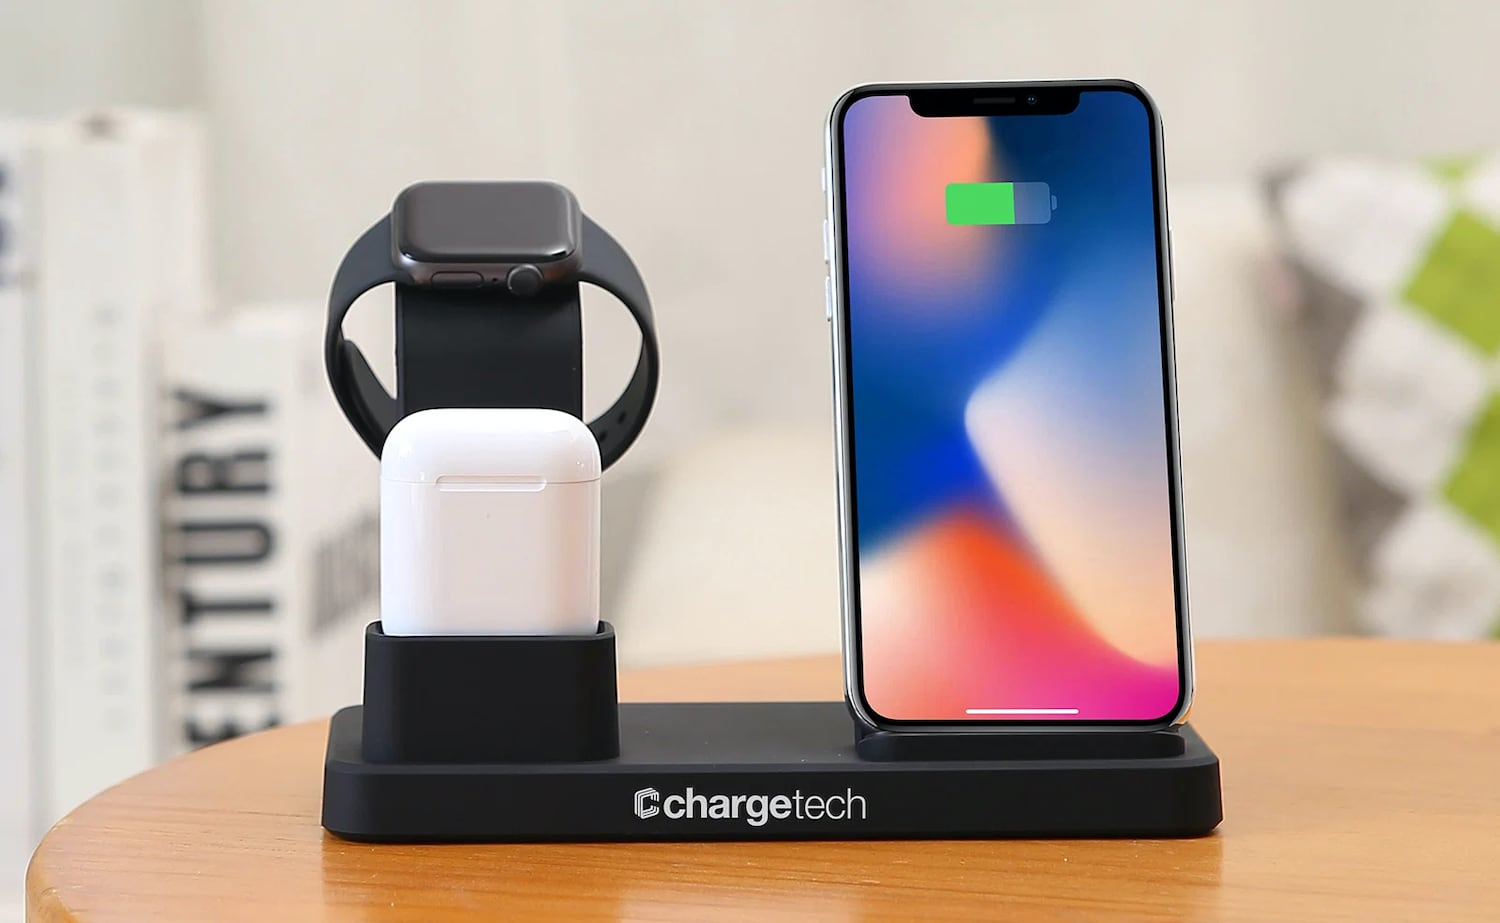 ChargeTech 3-in-1 Wireless Charger Multi-Device Hub fast charges with 10W of power